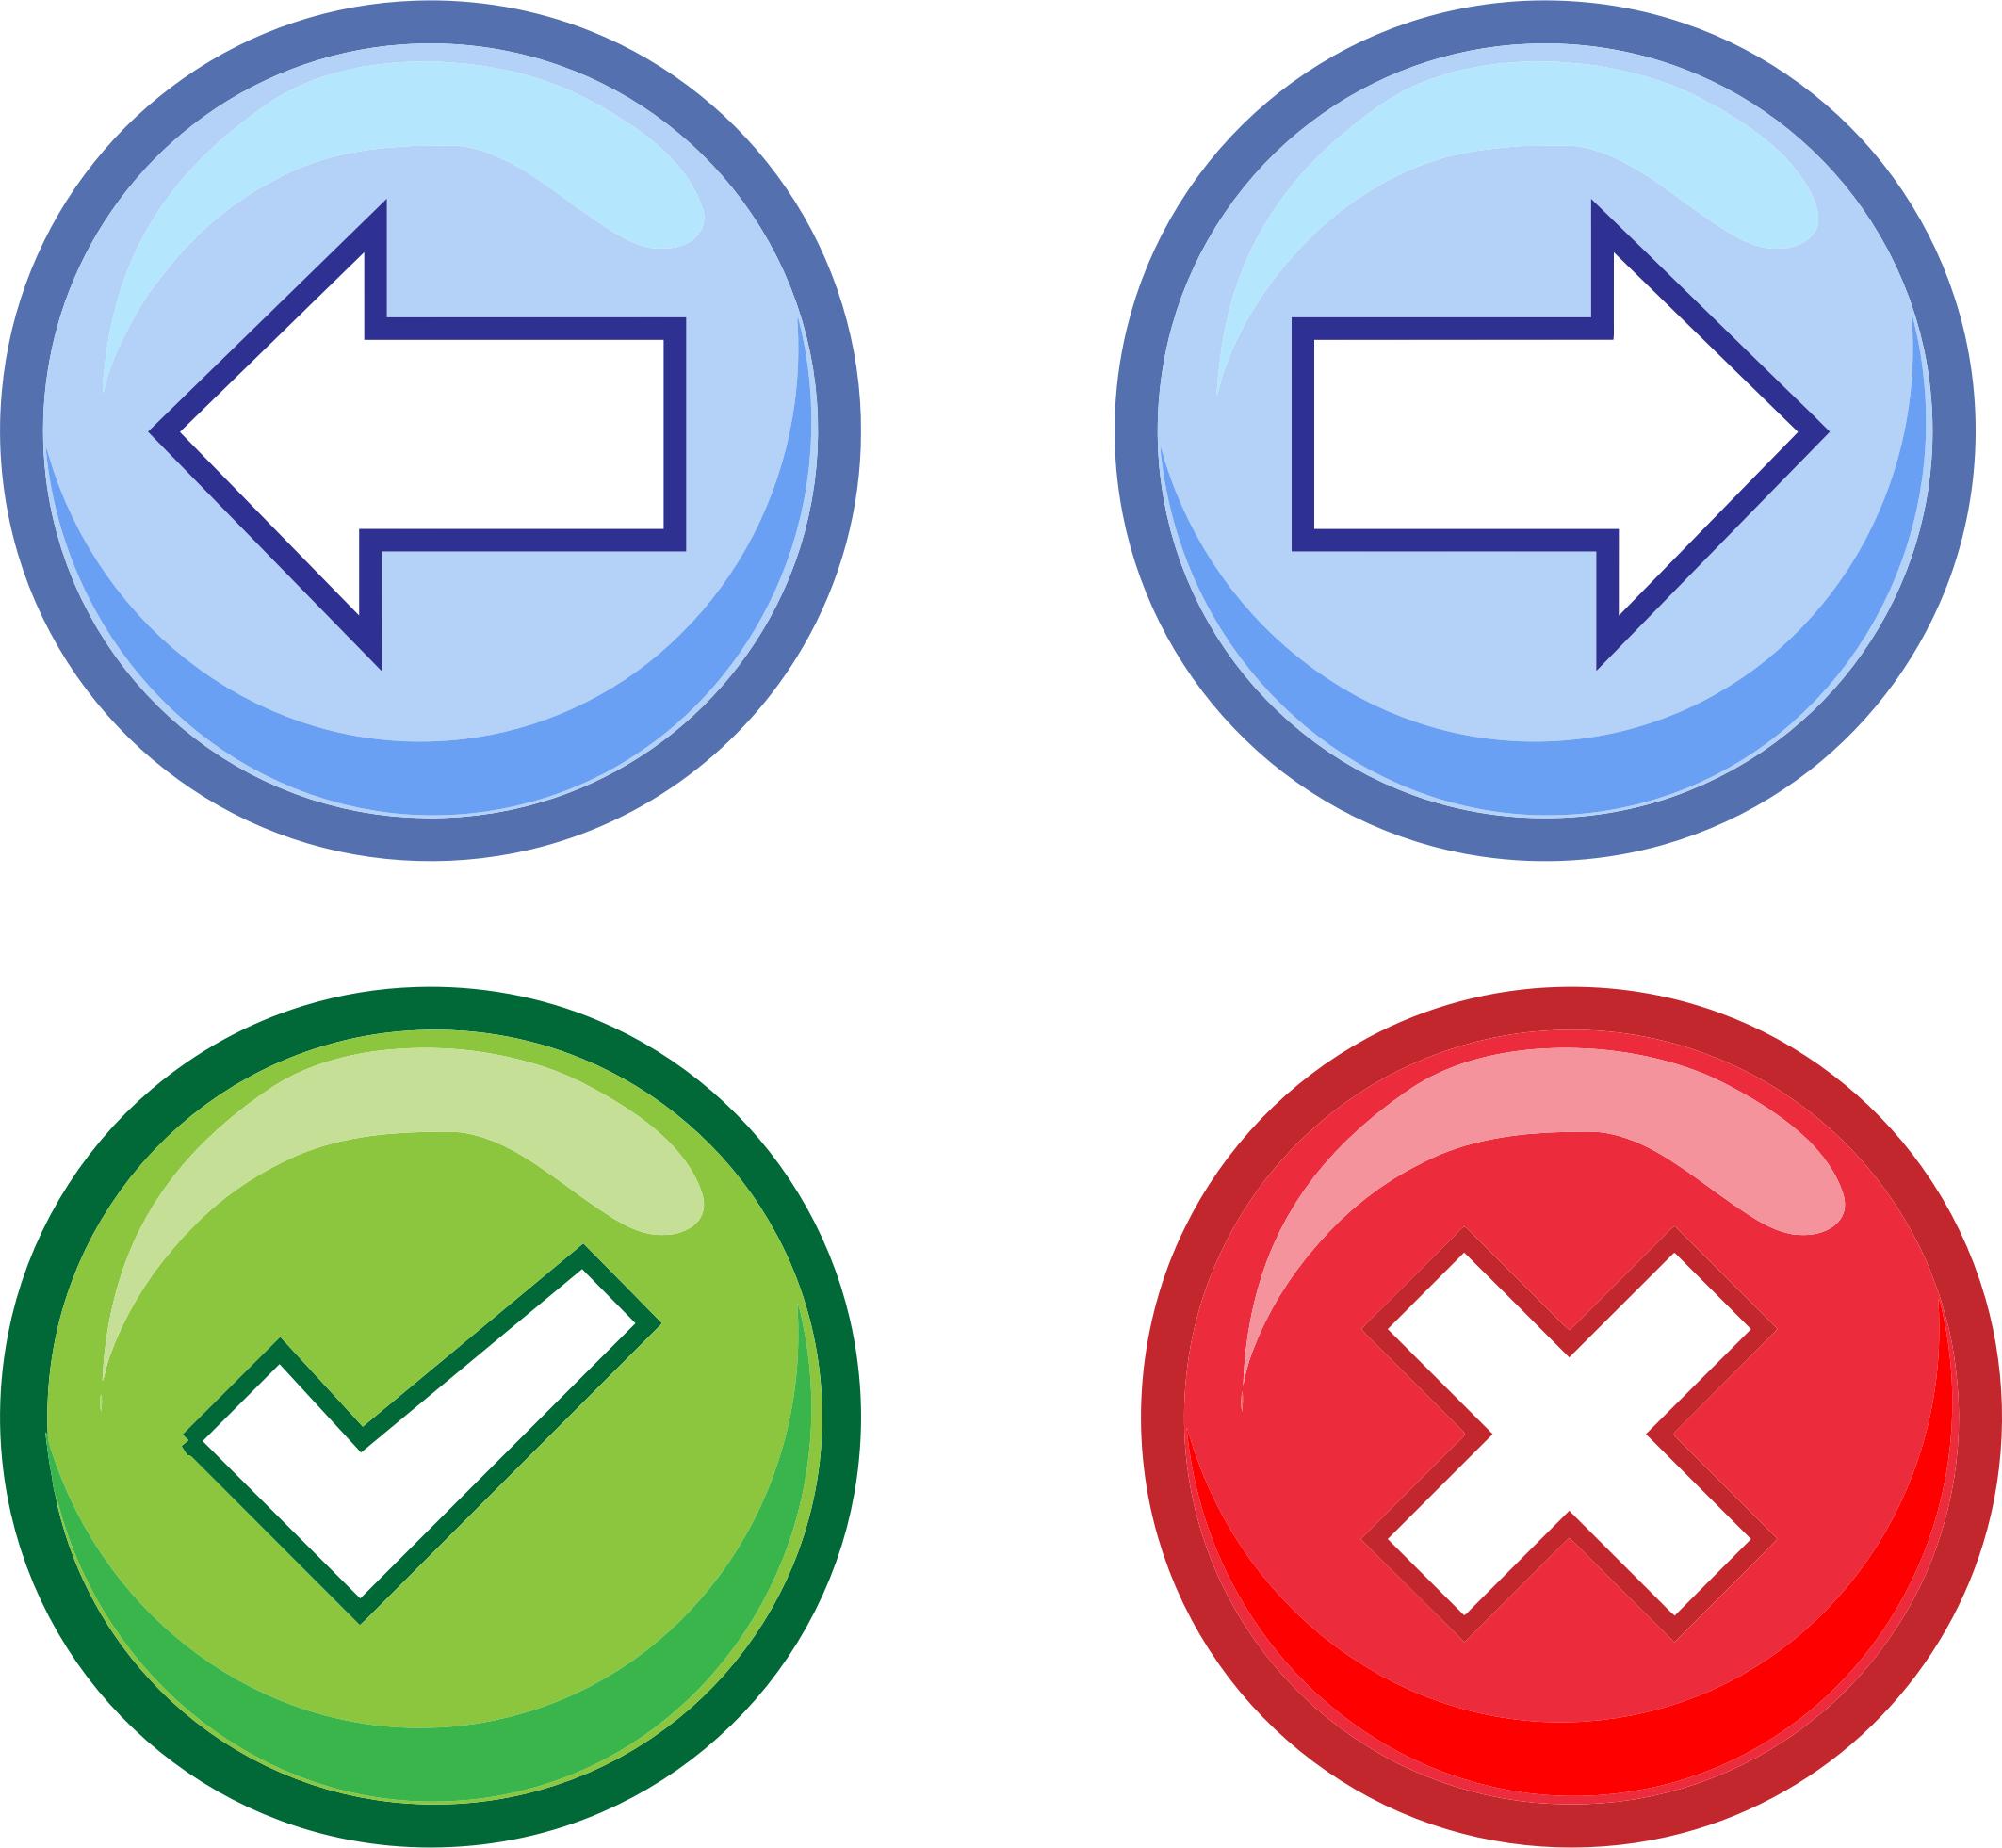 Web buttons icons png. Website clipart website button